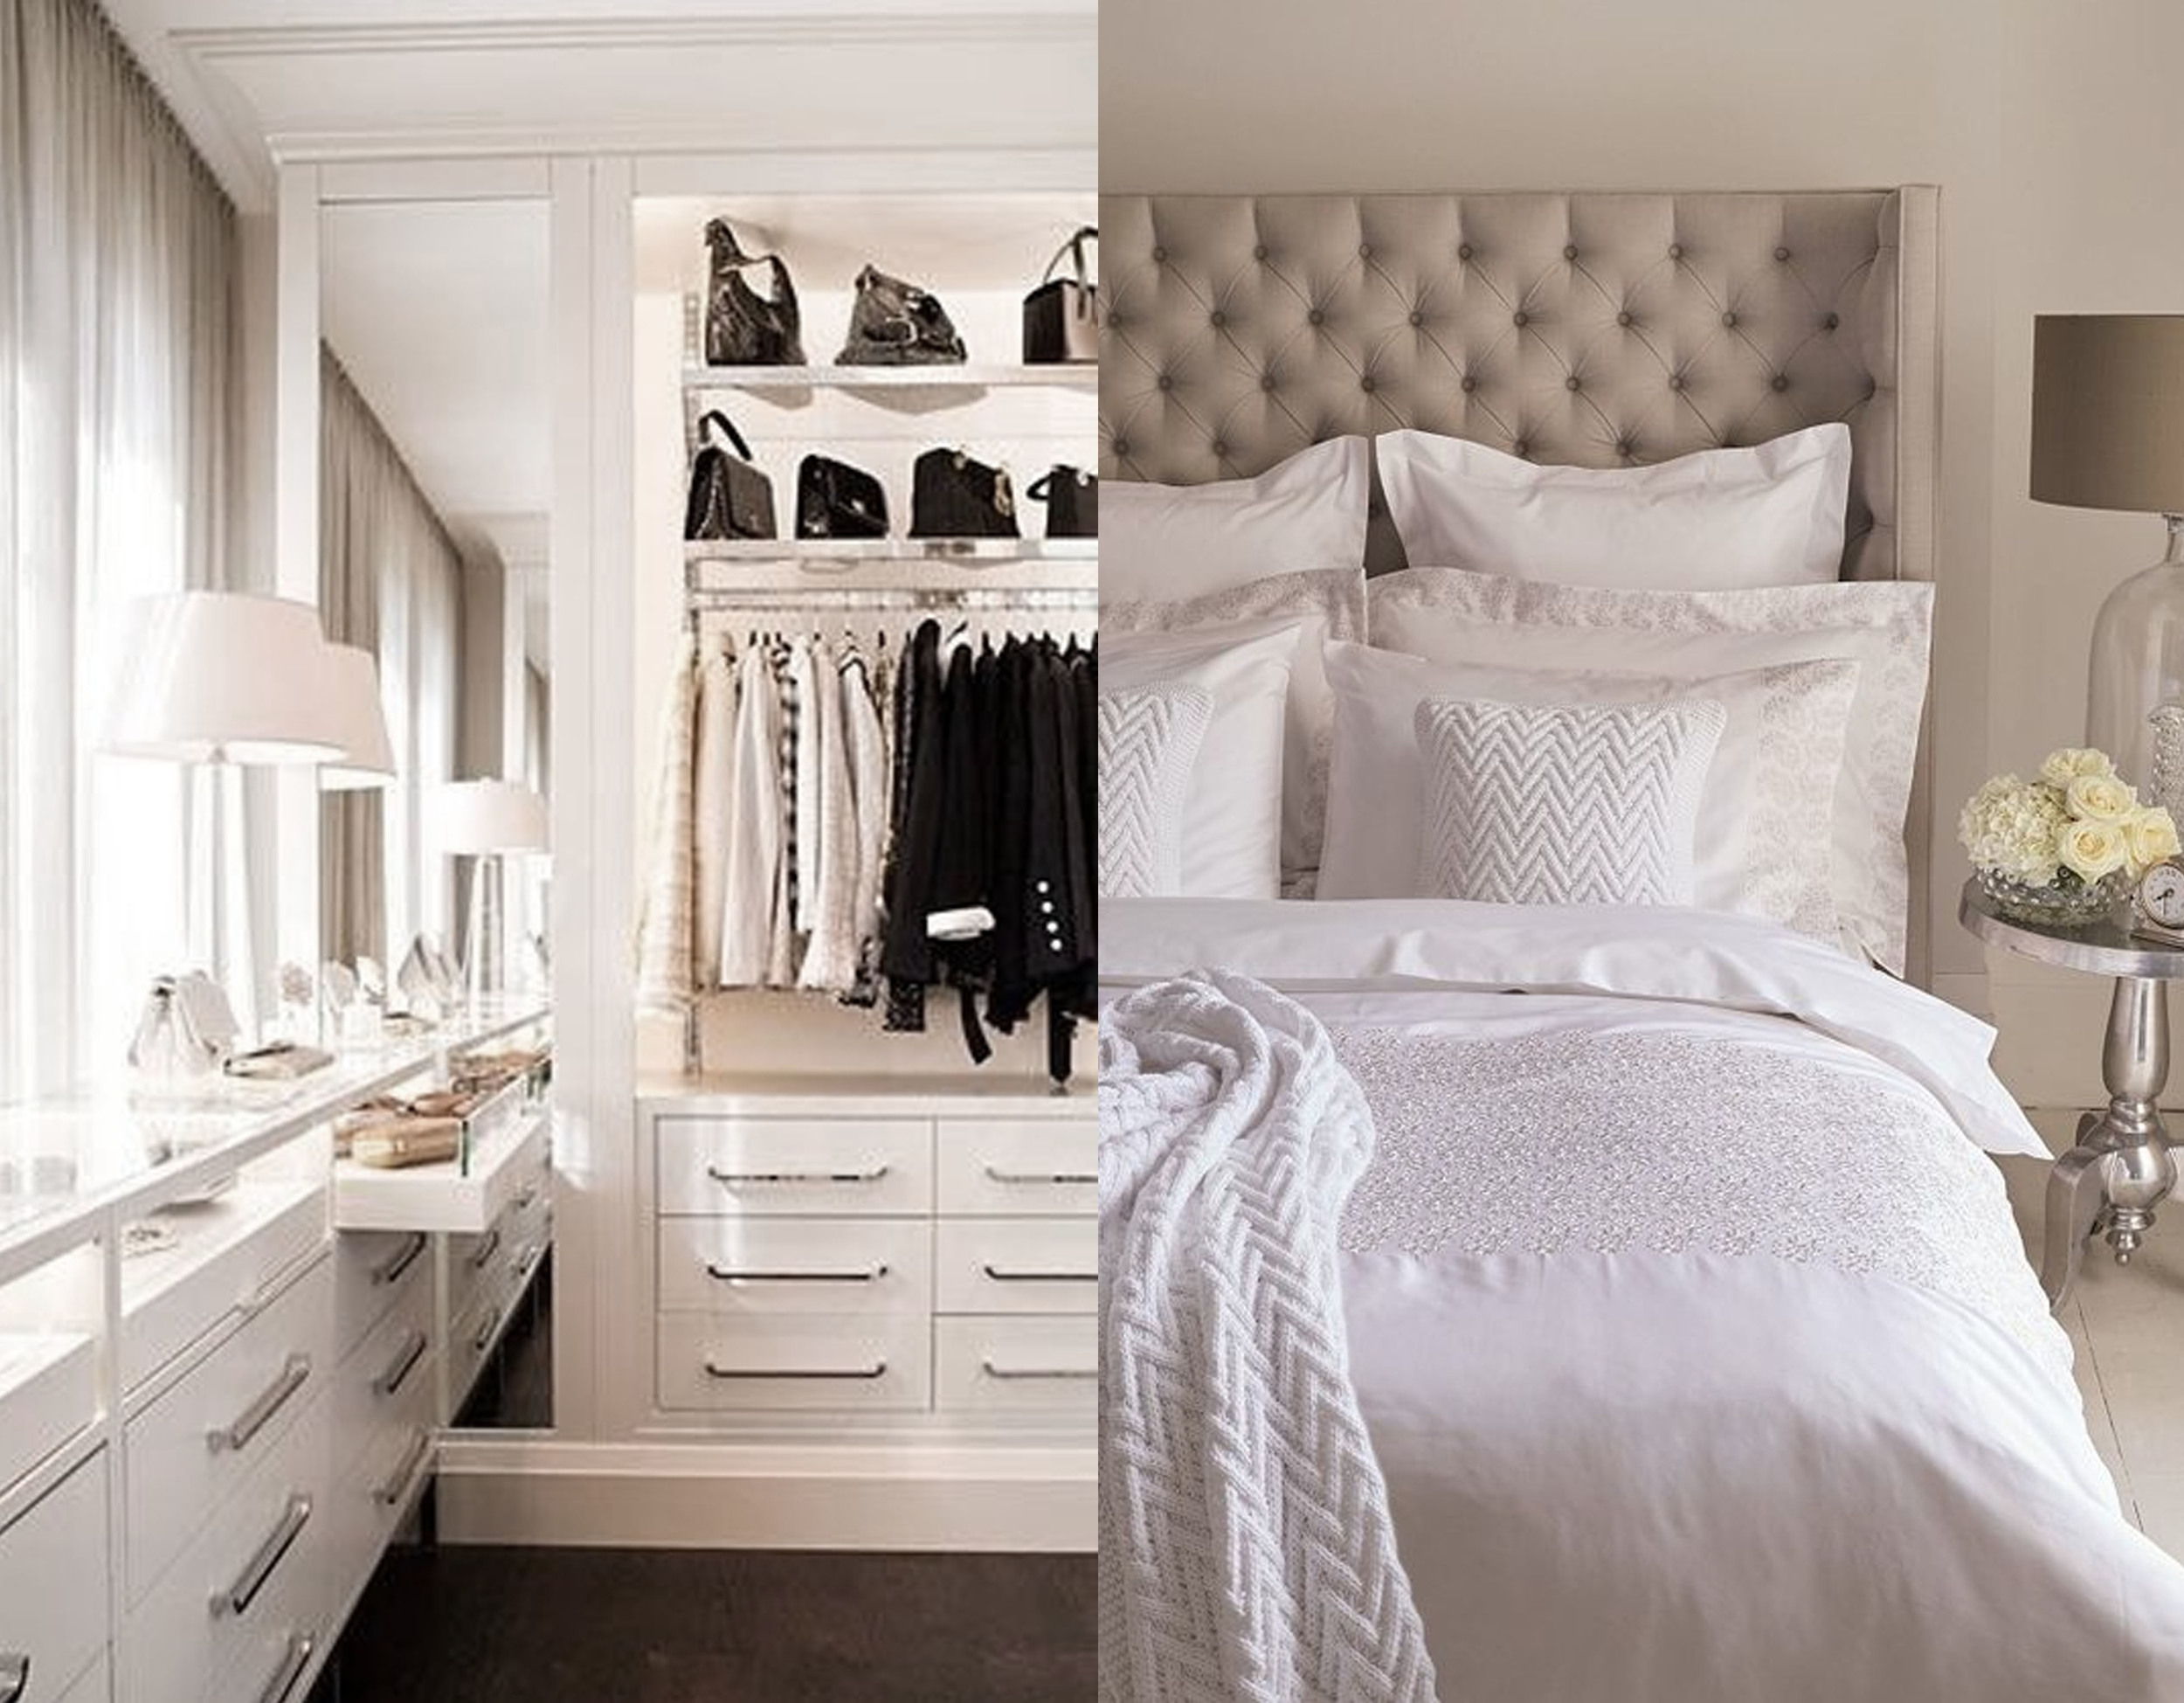 adding pillows will give a luxurious feeling - images Pinterest